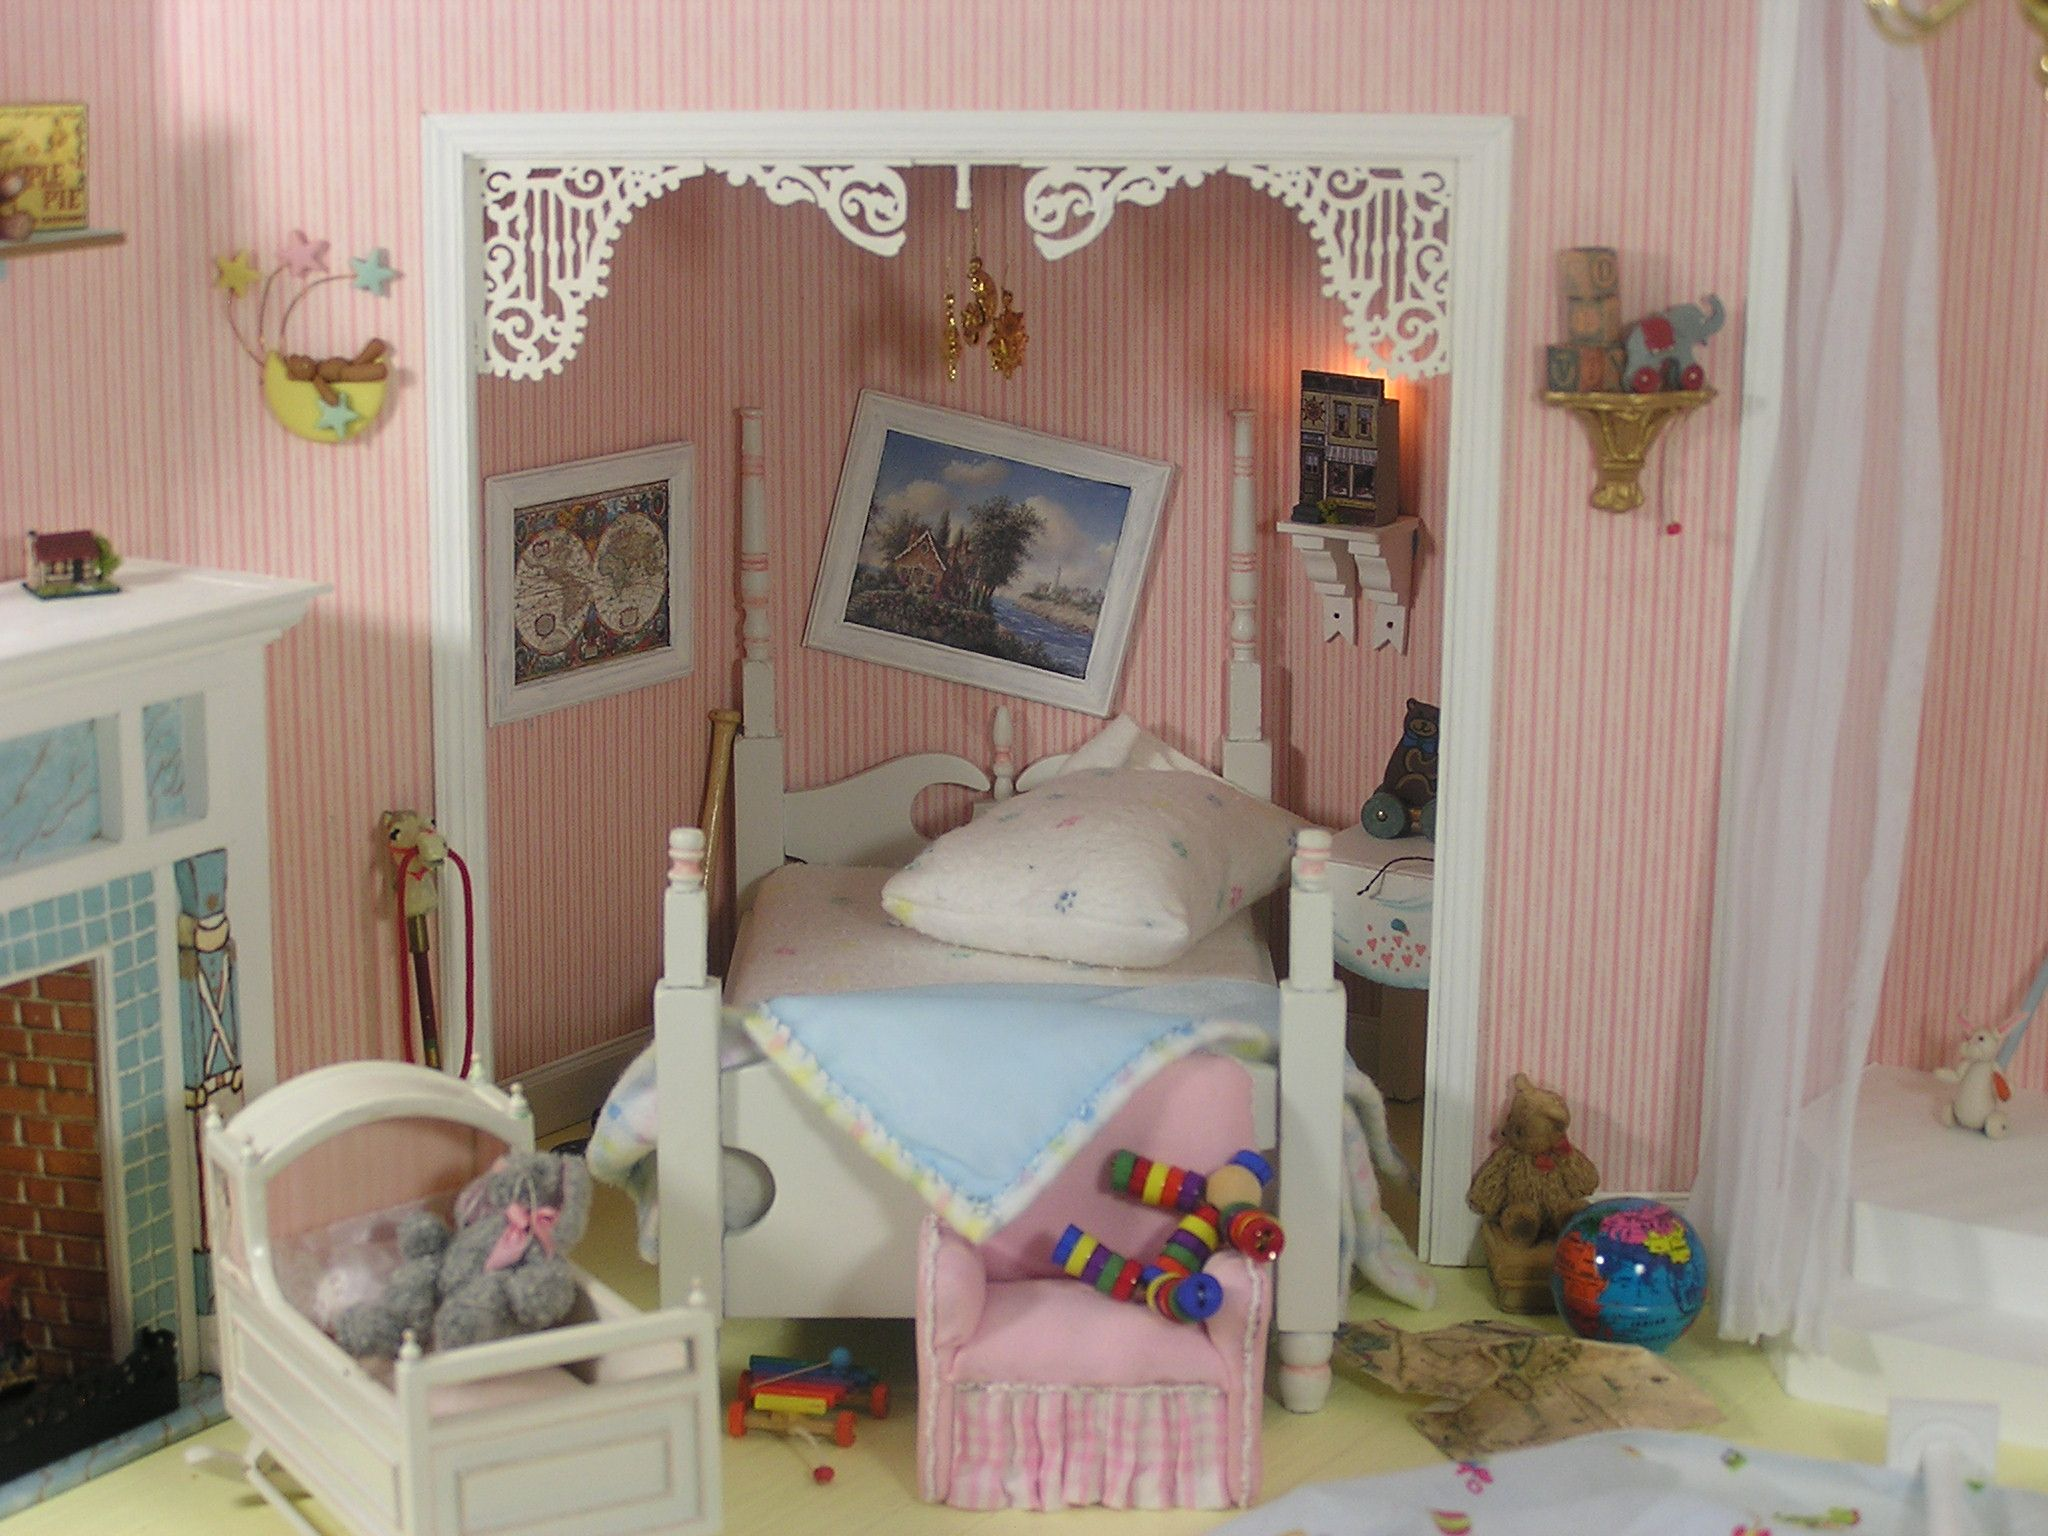 112 scale miniature roombox based on the childrens room from the movie hook with robin williams dustin hoffman sleeping nook left side - Robin Williams Bedroom